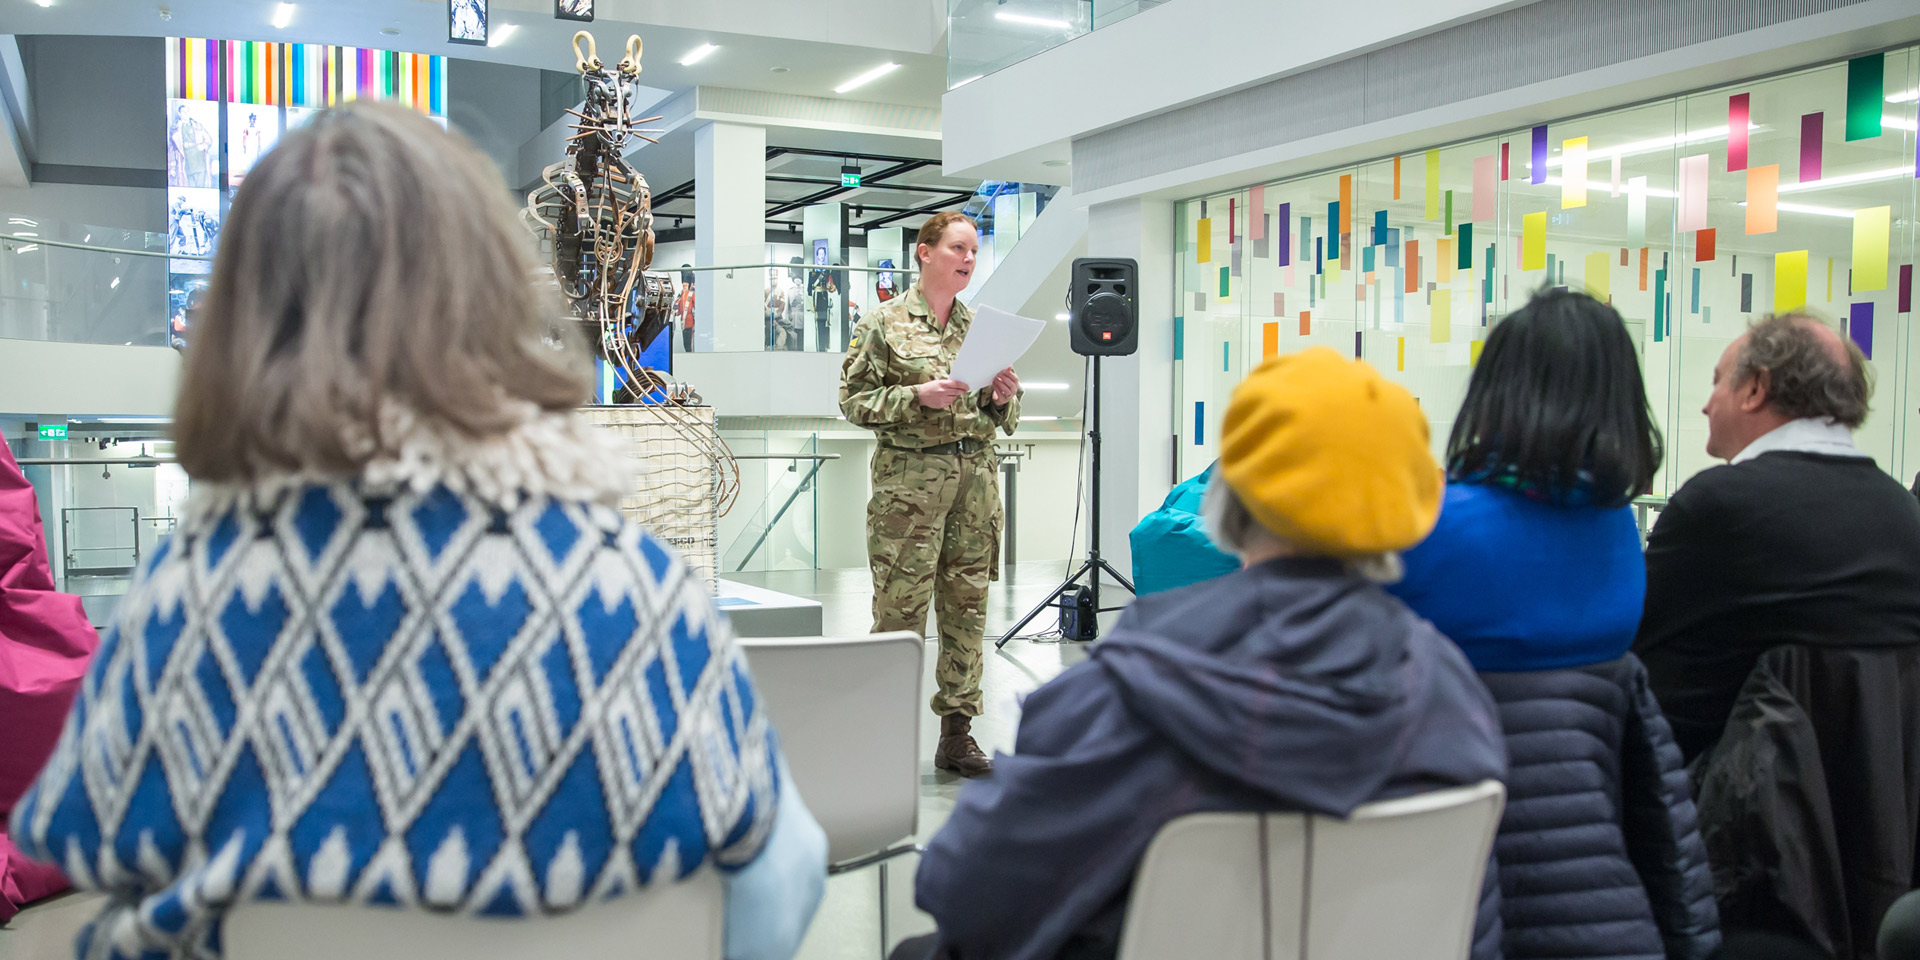 Woman soldier giving talk